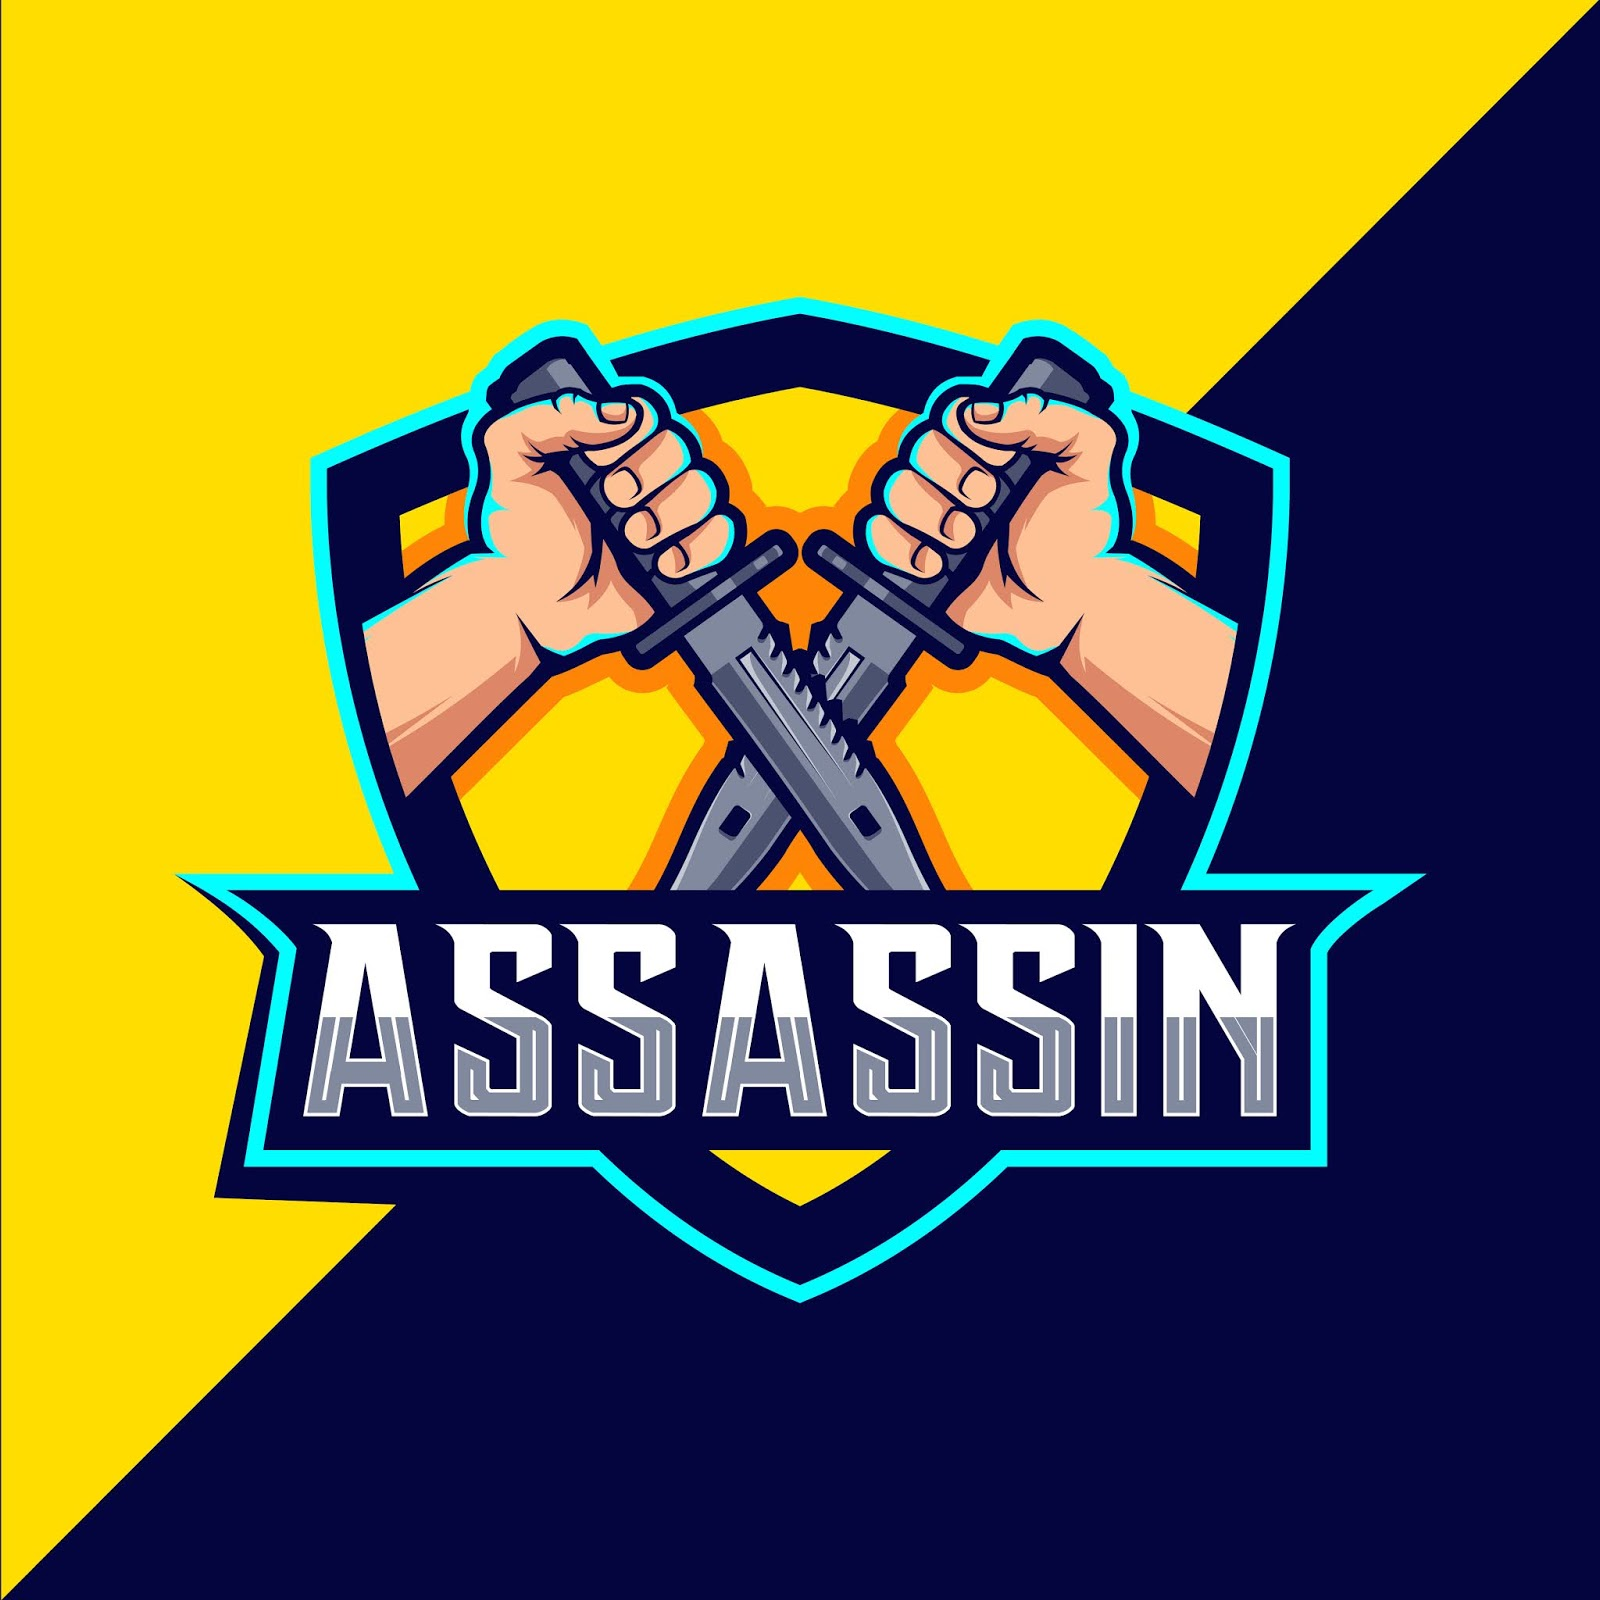 Assassin With Knife Mascot Esport Logo Design Free Download Vector CDR, AI, EPS and PNG Formats